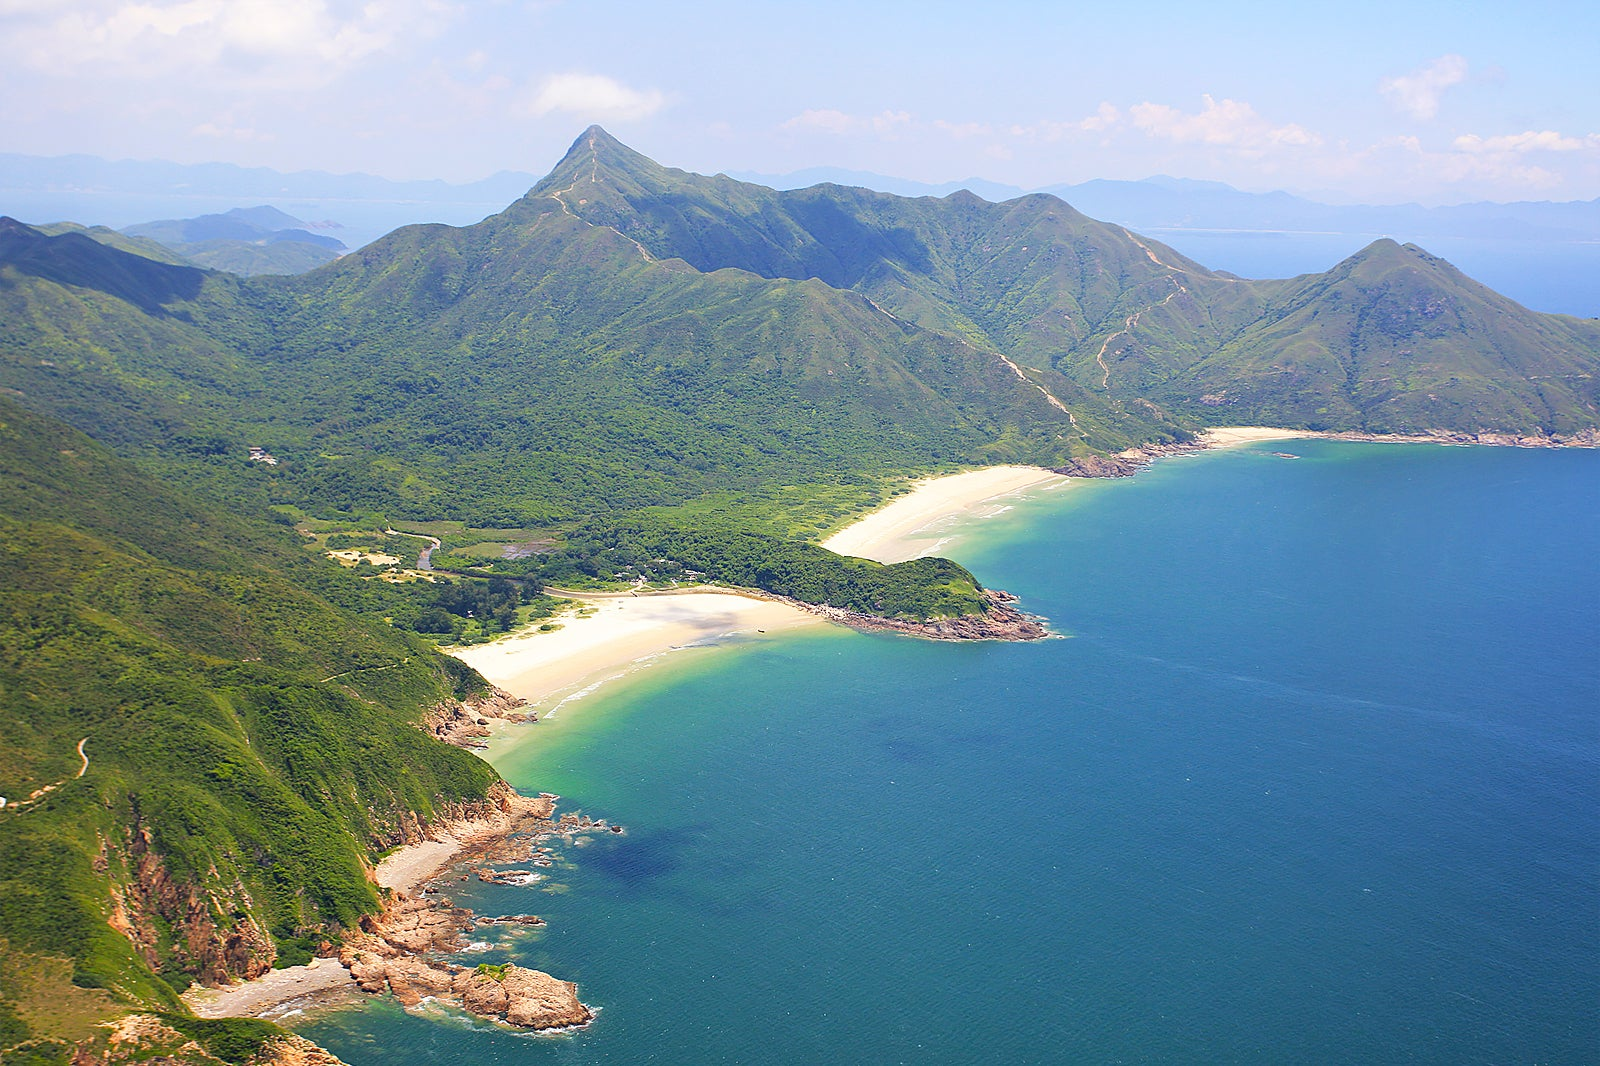 10 Best Panoramic Views in Hong Kong - Where to Go for